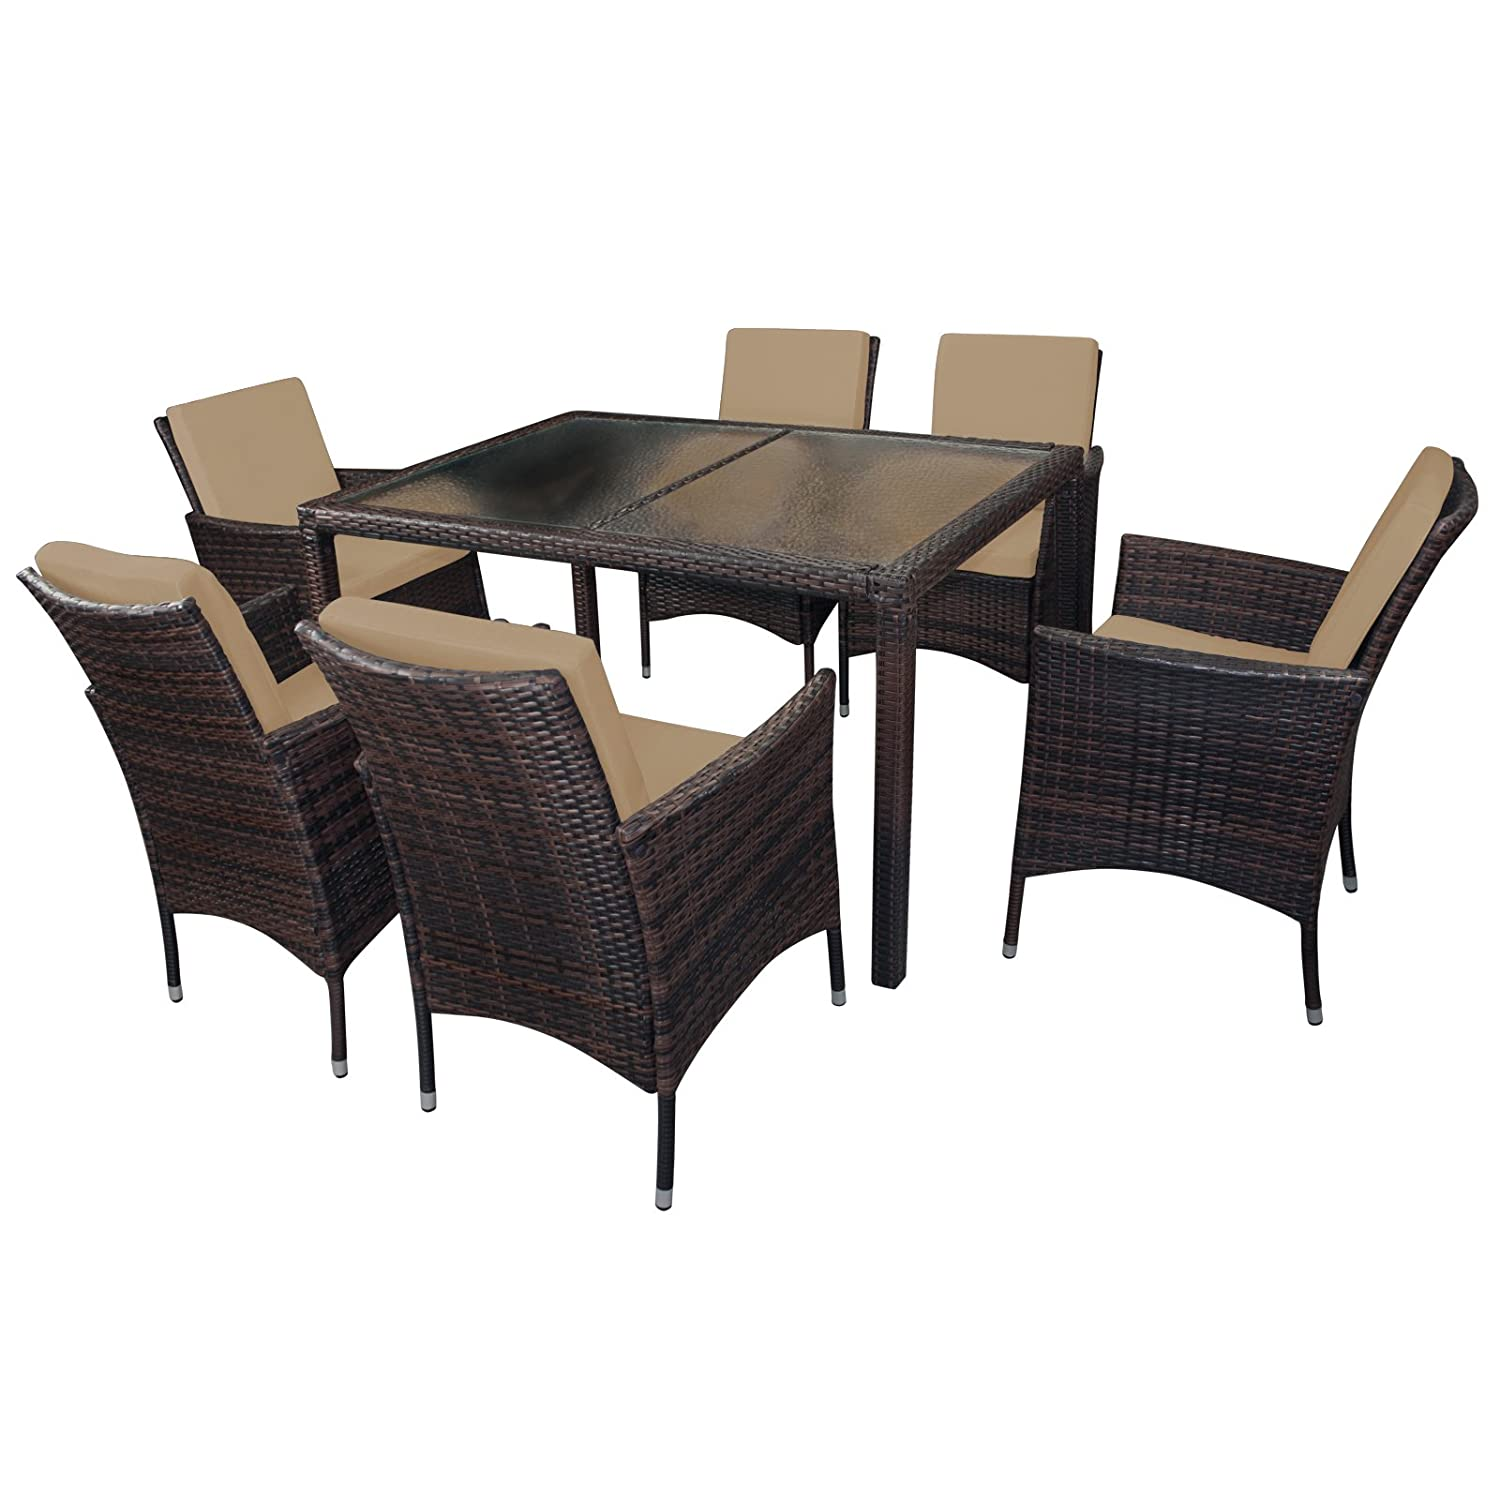 19 teilige polyrattan essgruppe margarita f r 6 personen gartenm bel essgruppe gartenset lounge. Black Bedroom Furniture Sets. Home Design Ideas